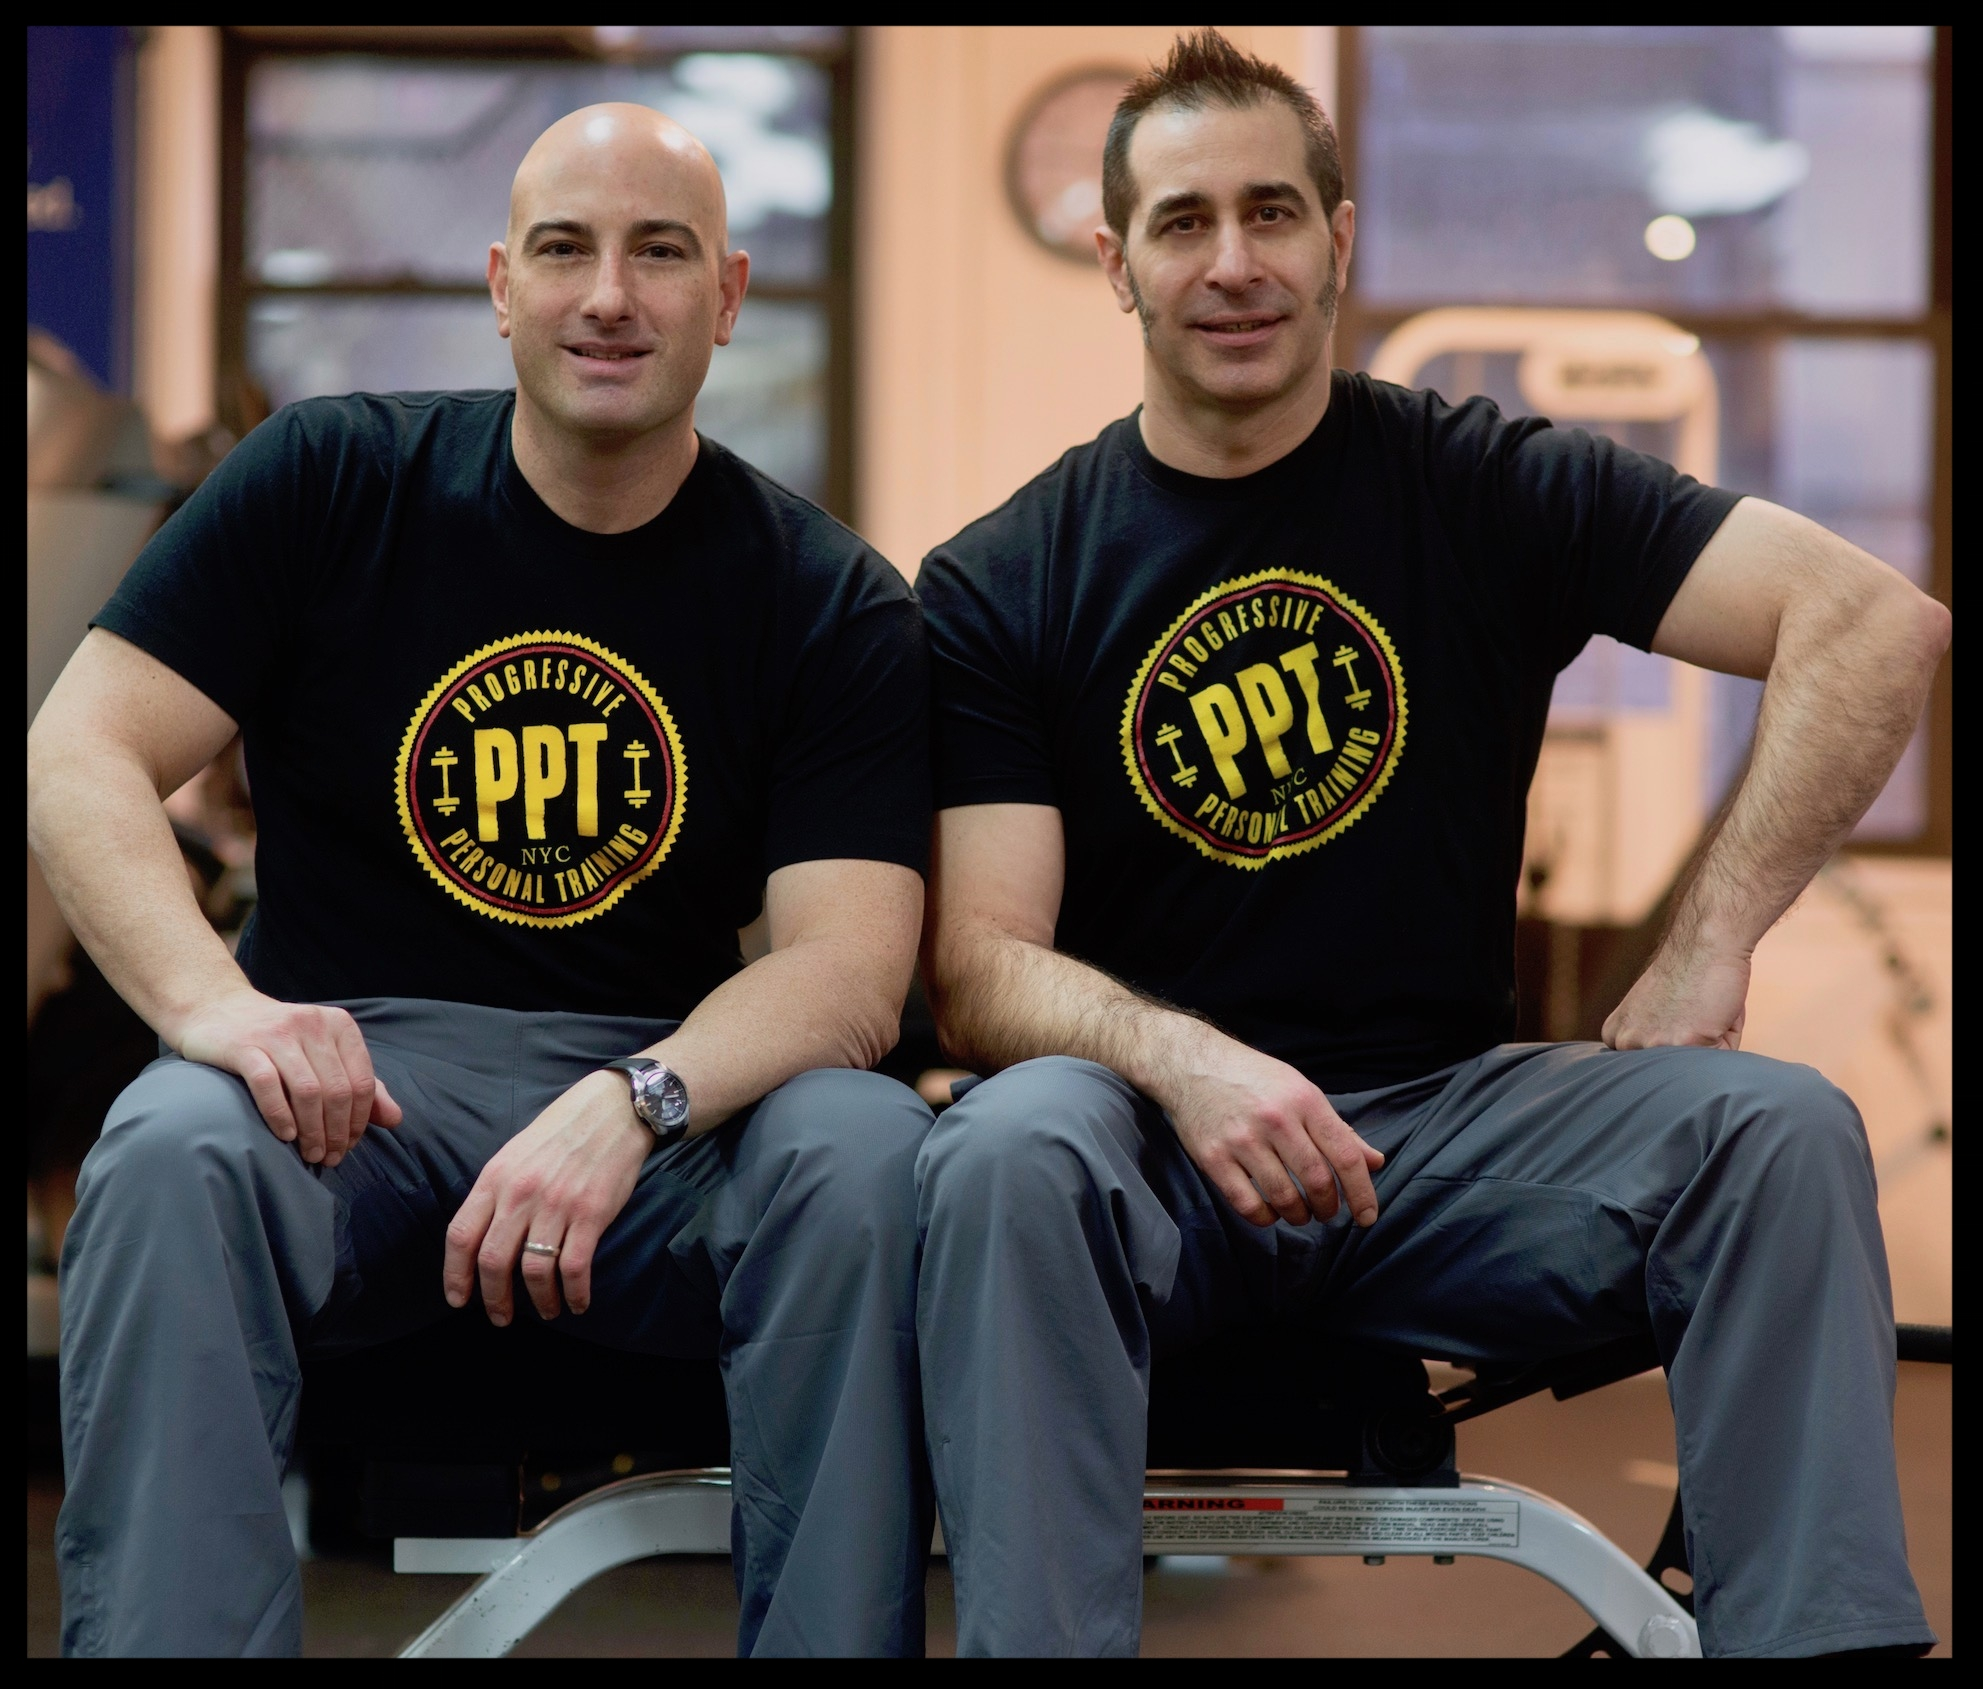 PPT Co-OwnersJames Camastra & Antonio Sini - Over 40 Years Of Training ExperiencePassionate & Professional